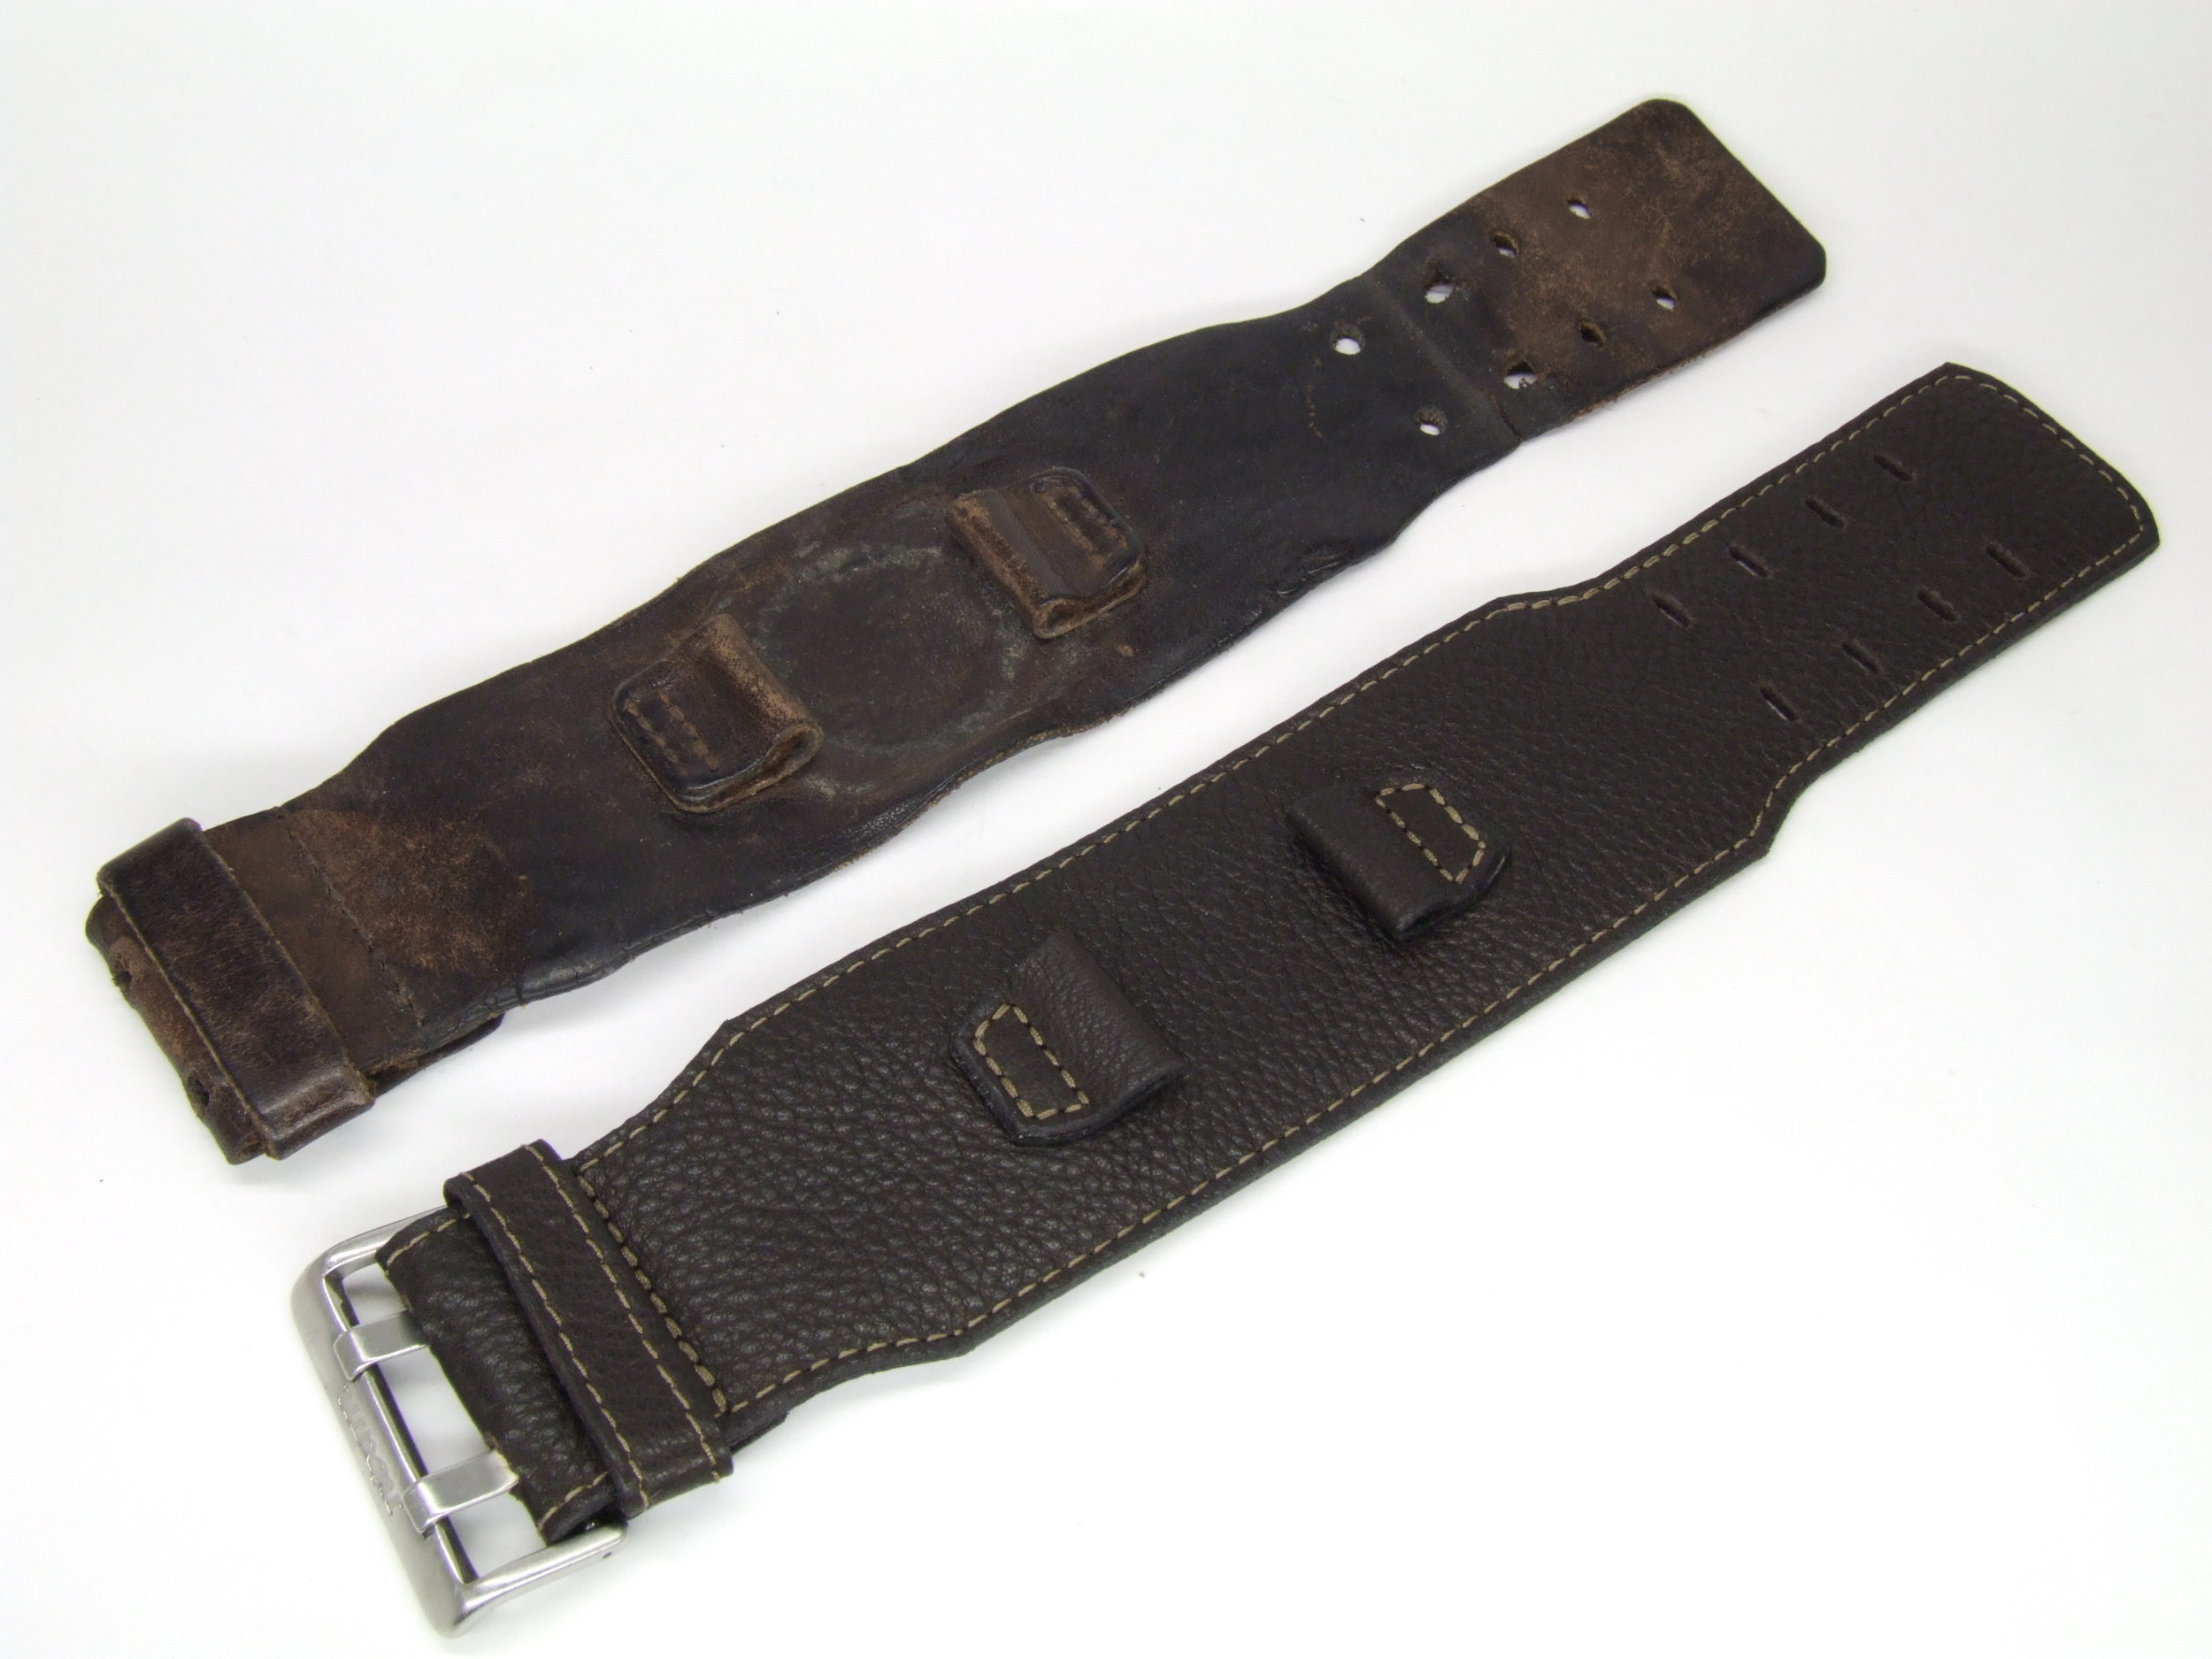 brown-leather-replace-nixon-watch-strap-against-original.jpg